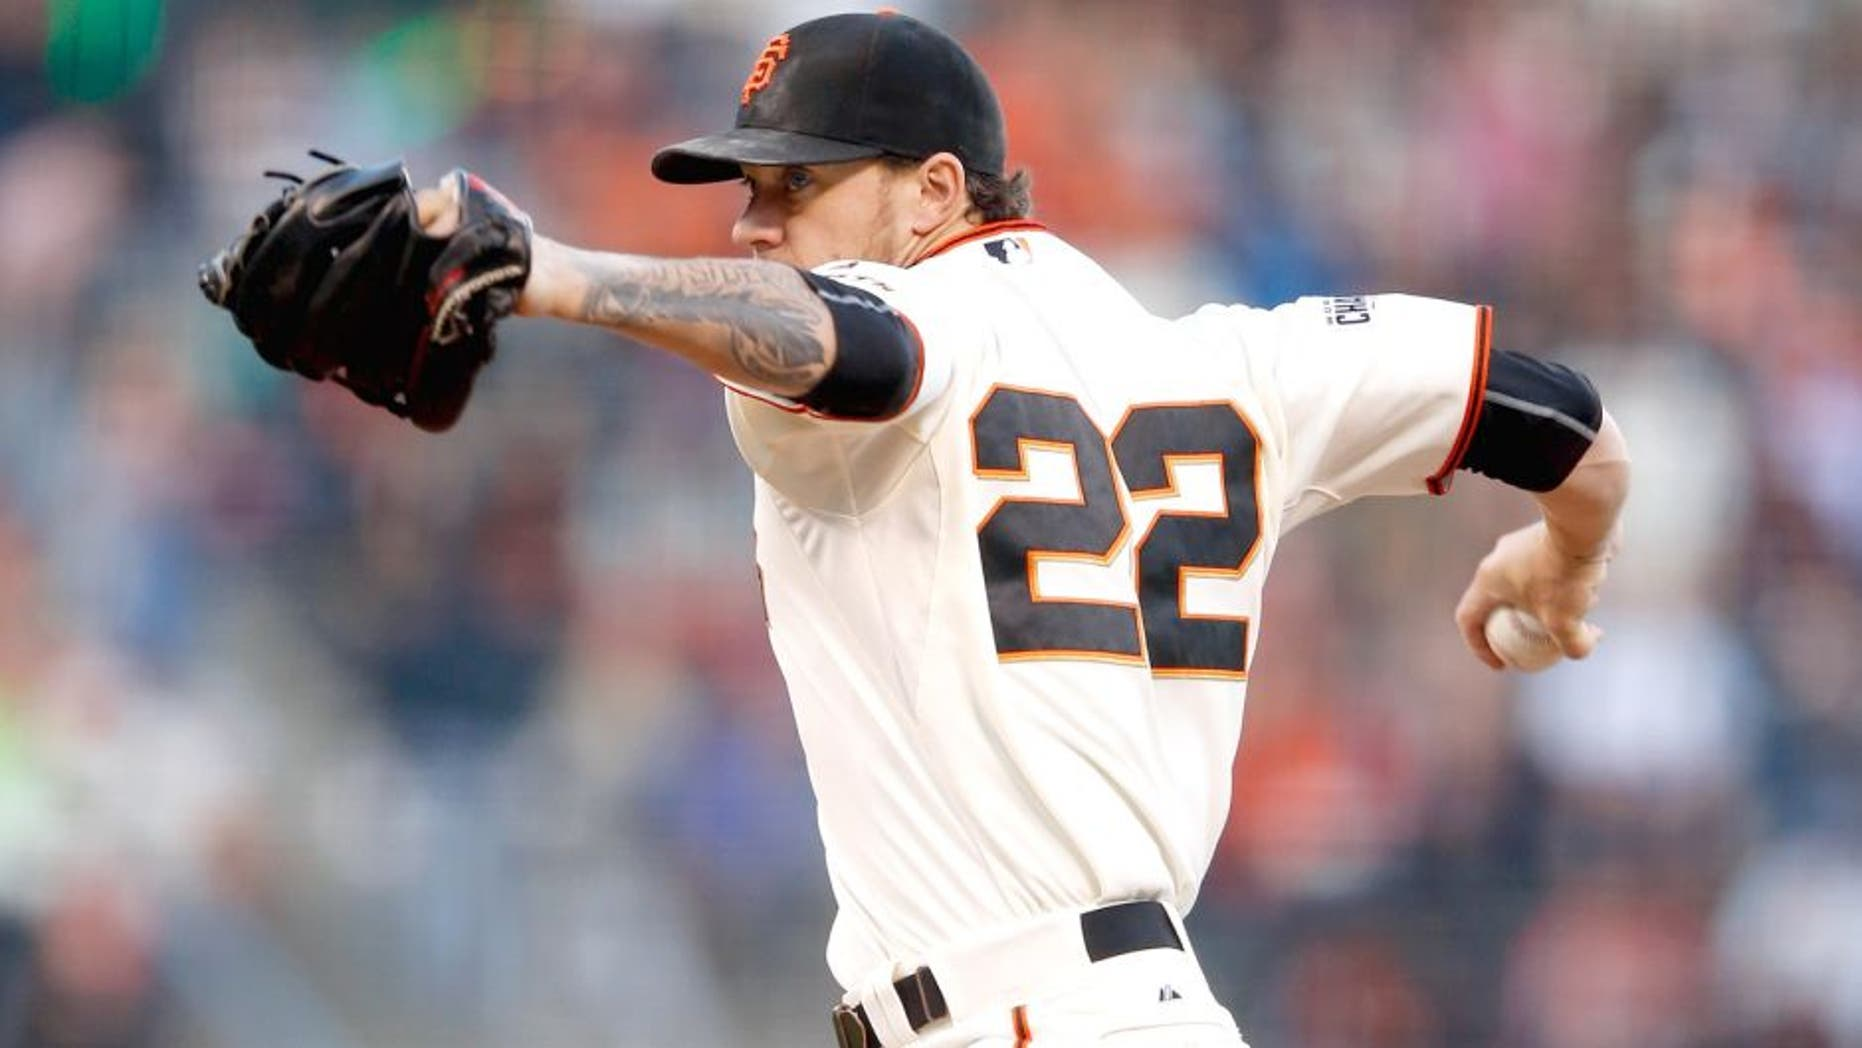 SAN FRANCISCO, CA - AUGUST 26: Jake Peavy #22 of the San Francisco Giants pitches against the Chicago Cubs in the first innig at AT&T Park on August 26, 2015 in San Francisco, California. (Photo by Ezra Shaw/Getty Images)